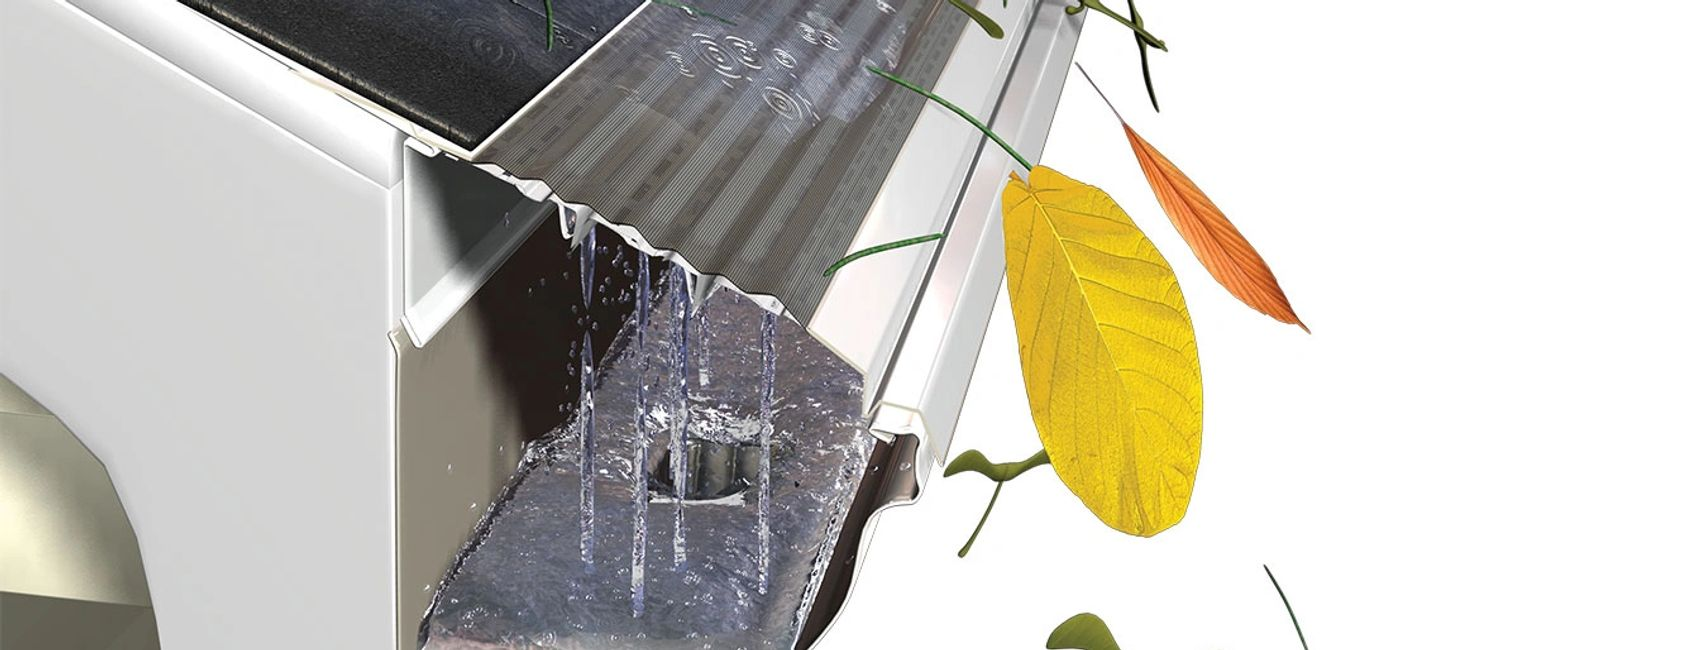 leaf-guards protecting eaves-trough gutters